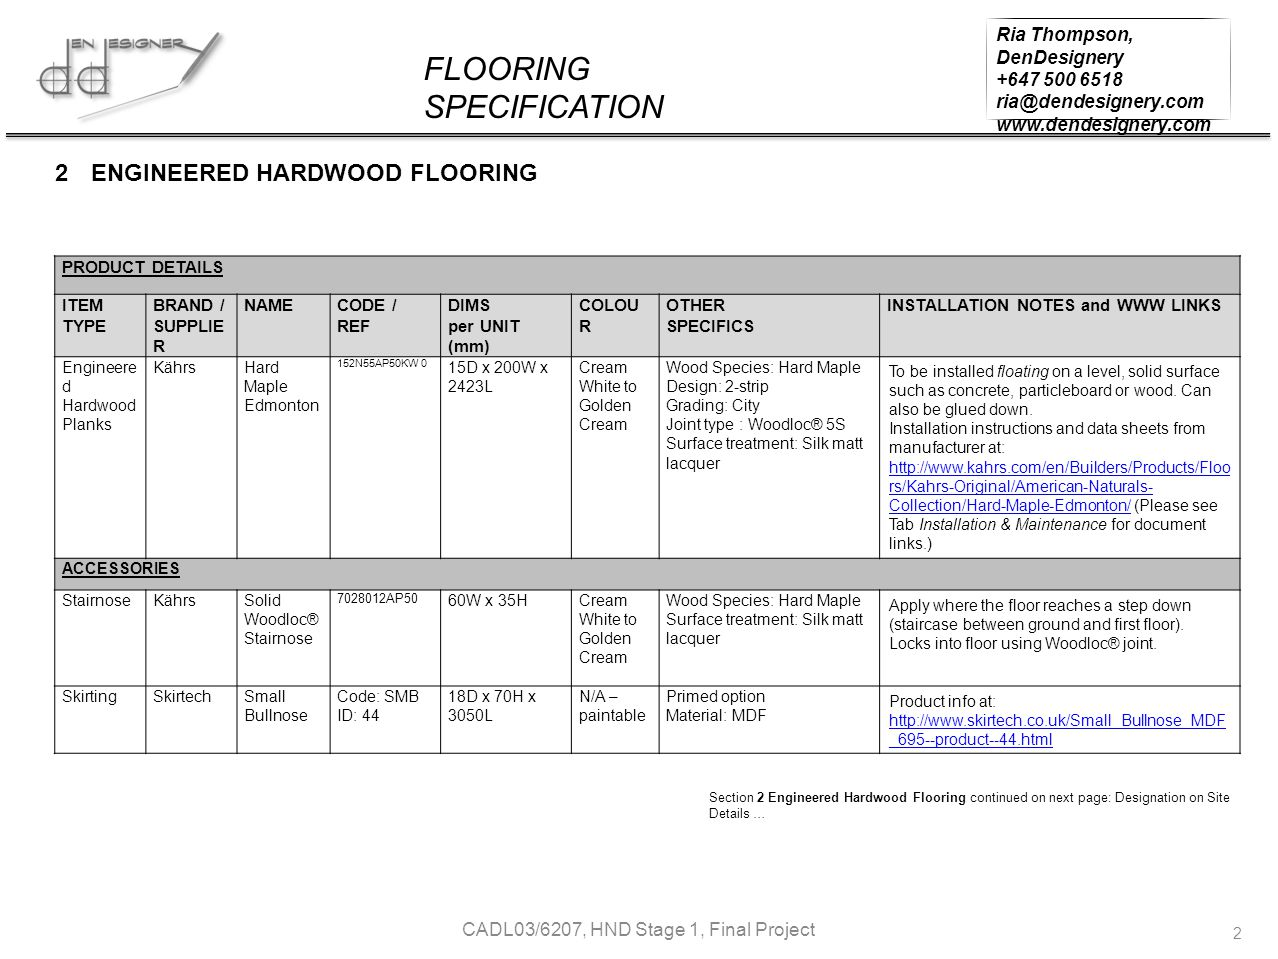 FLOORING SPECIFICATION Ria Thompson, DenDesignery +647 500 6518 ria@dendesignery.com www.dendesignery.com CADL03/6207, HND Stage 1, Final Project 2 PRODUCT DETAILS ITEM TYPE BRAND / SUPPLIE R NAMECODE / REF DIMS per UNIT (mm) COLOU R OTHER SPECIFICS INSTALLATION NOTES and WWW LINKS Engineere d Hardwood Planks KährsHard Maple Edmonton 152N55AP50KW 0 15D x 200W x 2423L Cream White to Golden Cream Wood Species: Hard Maple Design: 2-strip Grading: City Joint type : Woodloc® 5S Surface treatment: Silk matt lacquer To be installed floating on a level, solid surface such as concrete, particleboard or wood.